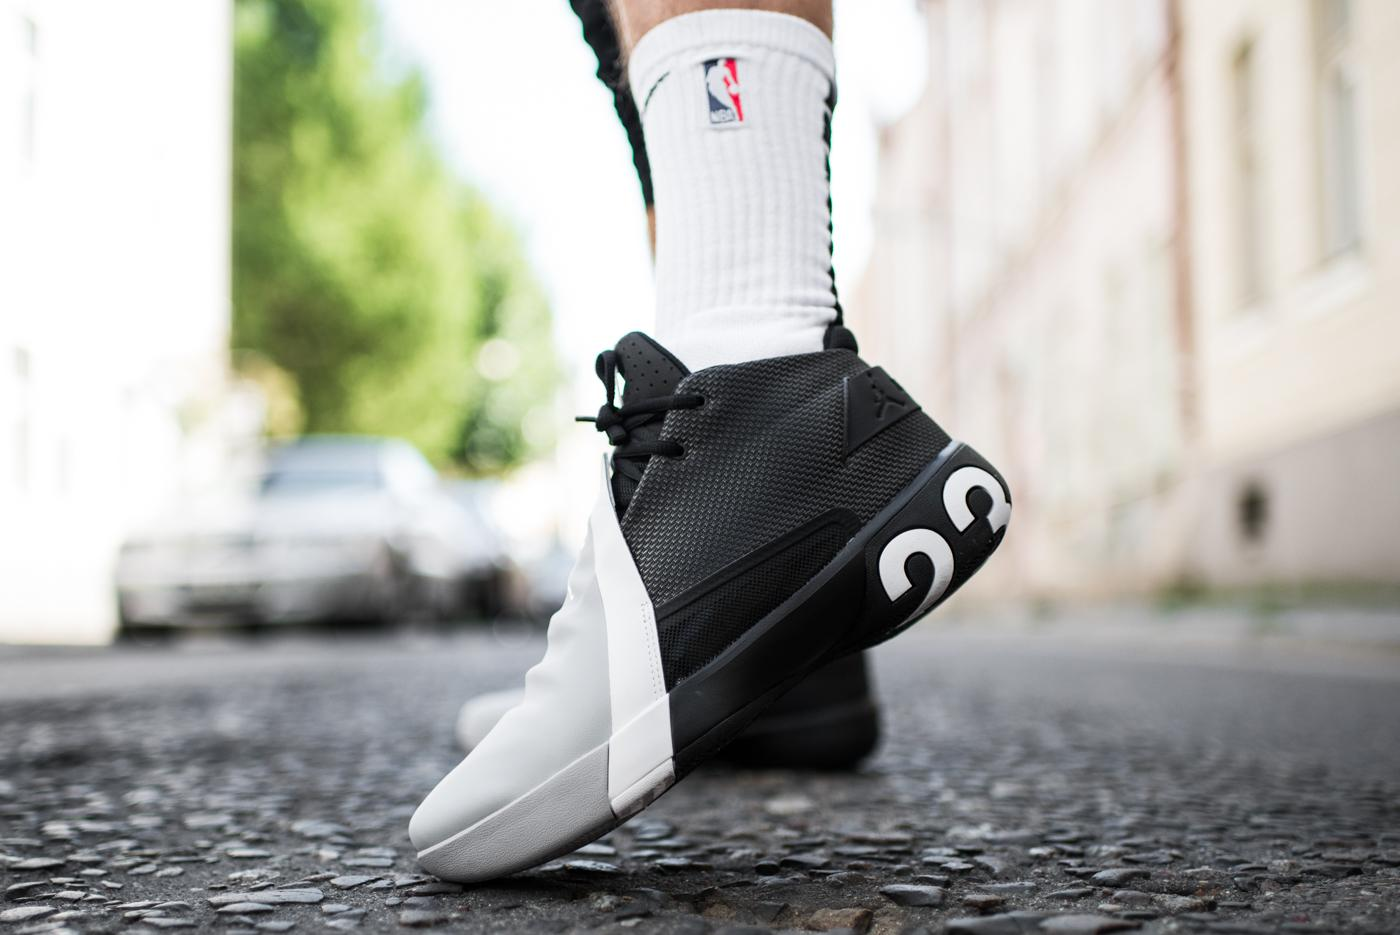 new arrival 78237 ebdf5 An On-Foot Look at the Jordan Ultra Fly 3 - WearTesters